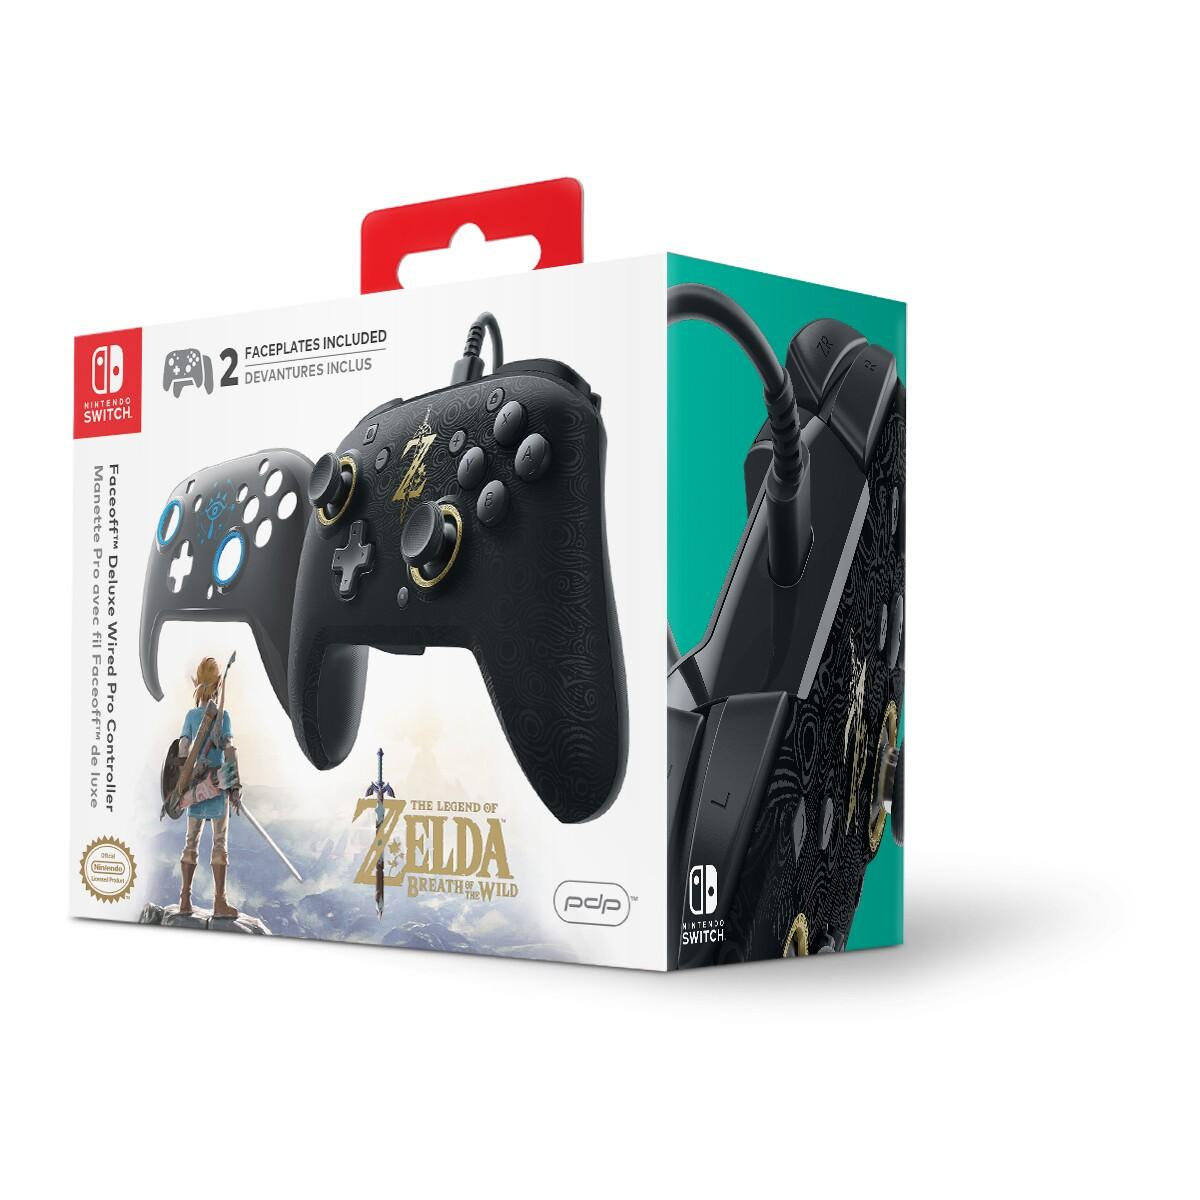 Nintendo Switch Faceoff Deluxe Wired Controller (Breath Of The Wild Edition)